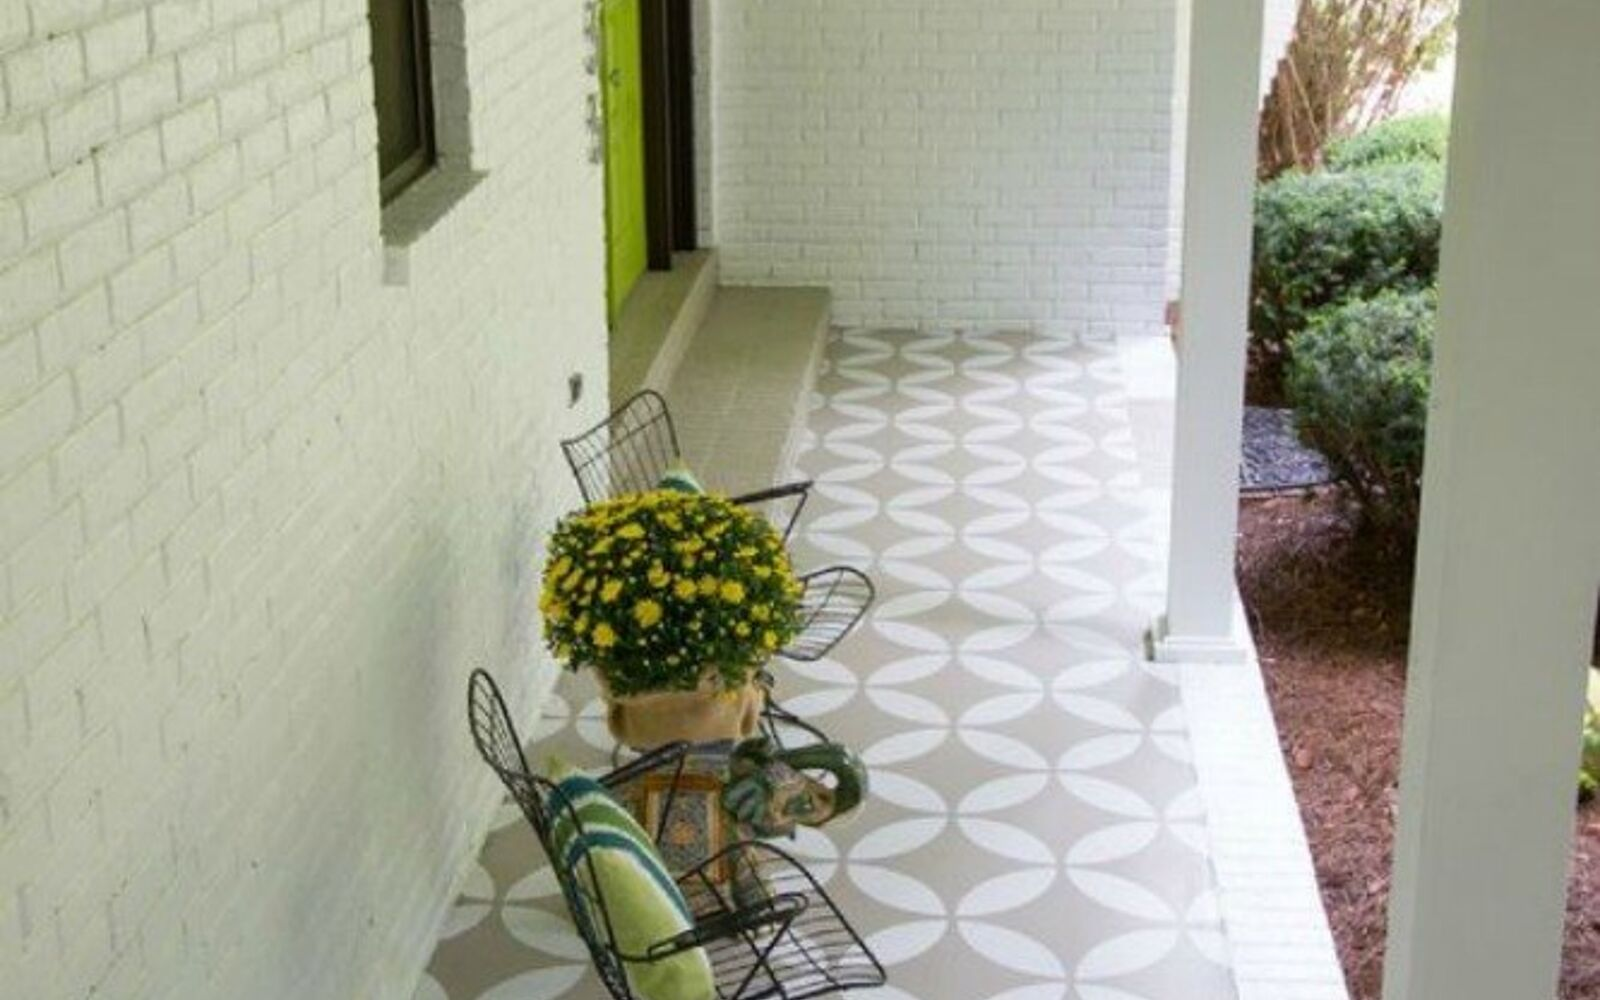 s 14 glamorous ways to upgrade your home using stencils, home decor, Add curb appeal with a new porch floor